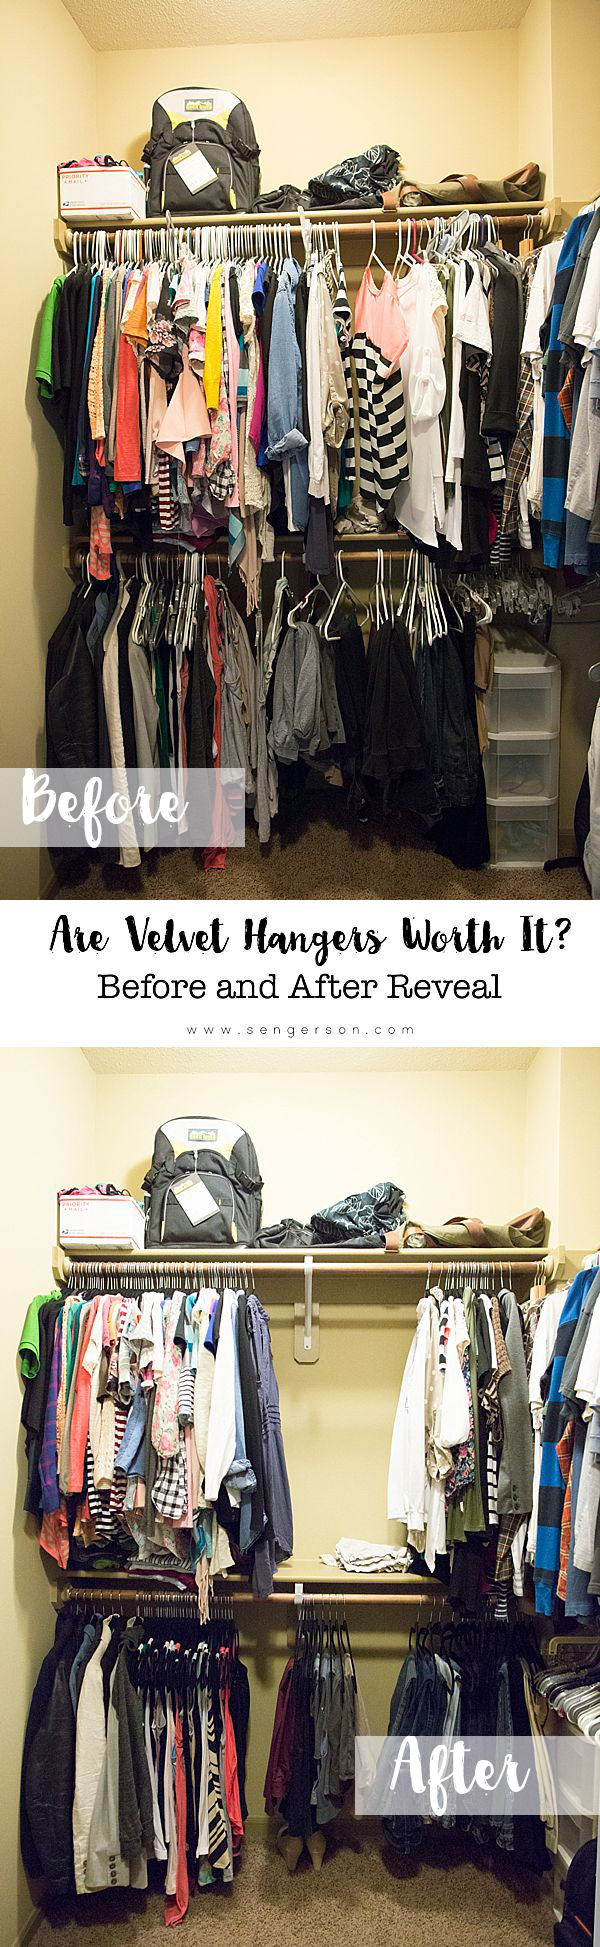 closet-before-and-after-reveal-velvet-hangers